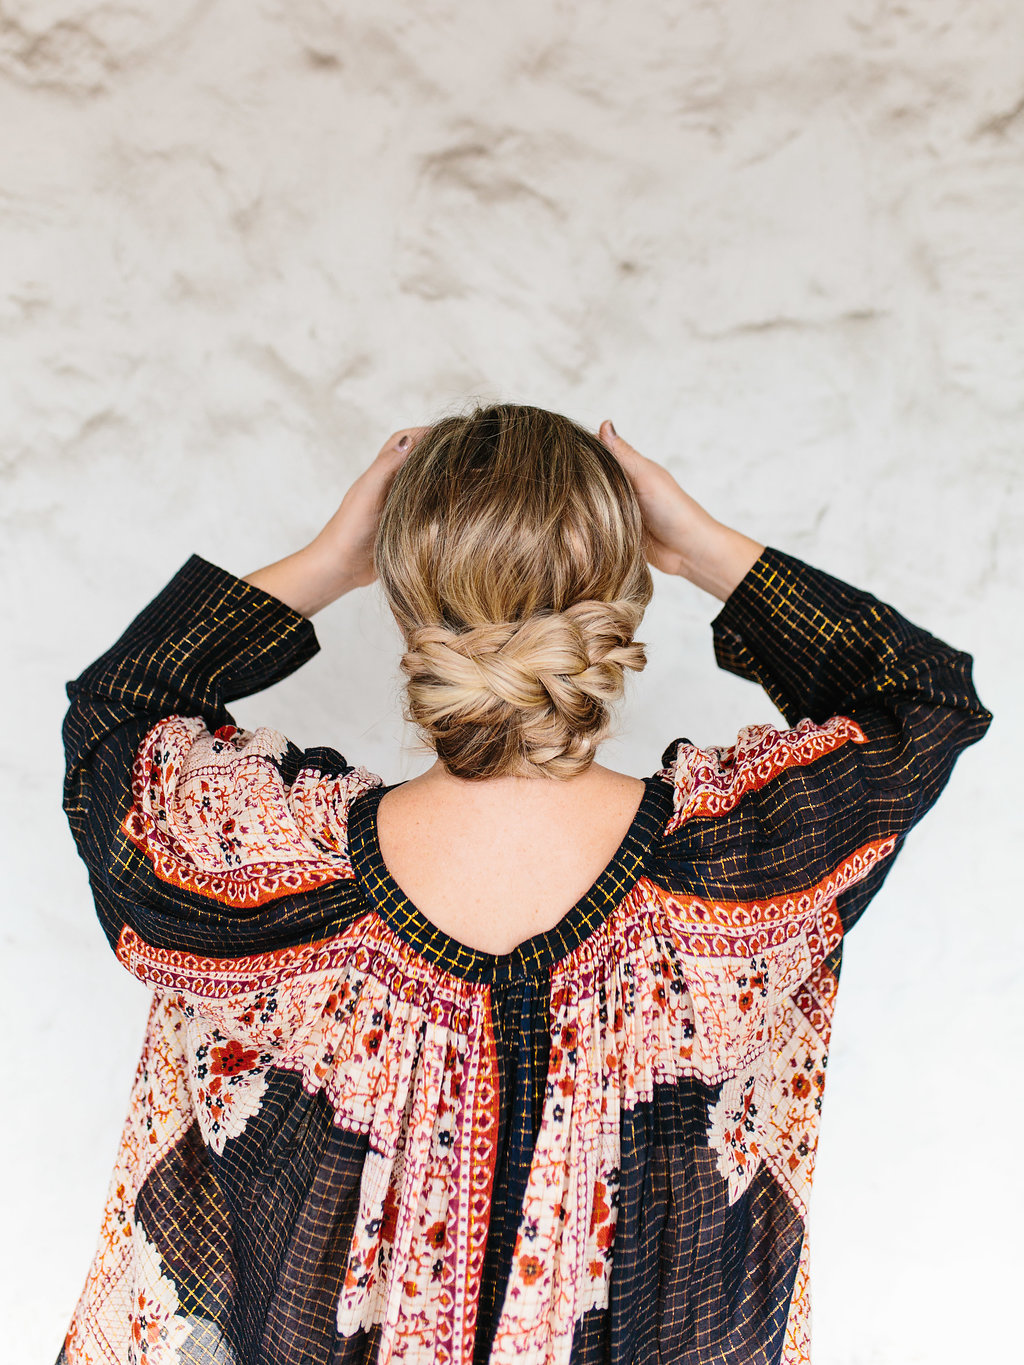 6 simple holiday hairstyles - with the party-ready hair tutorials - that are sure to WOW at your next event this holiday season. | glitterinc.com | @glitterinc - Easy Triple Braided Updo - 6 Simple Holiday Hairstyles That Are Sure to Wow by North Carolina style blogger Glitter, Inc